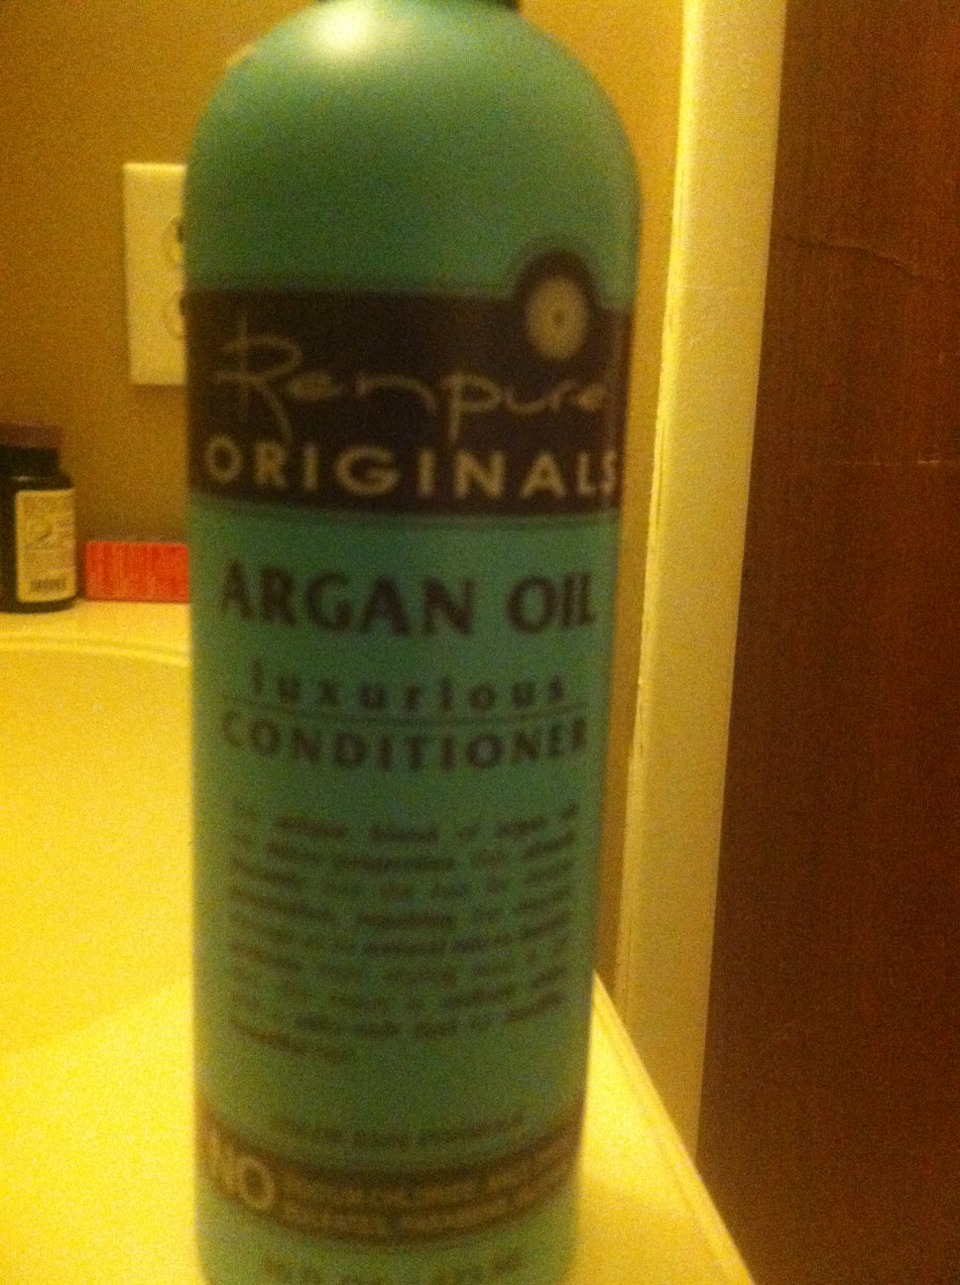 This conditioner works wonders with my curly hair 😊